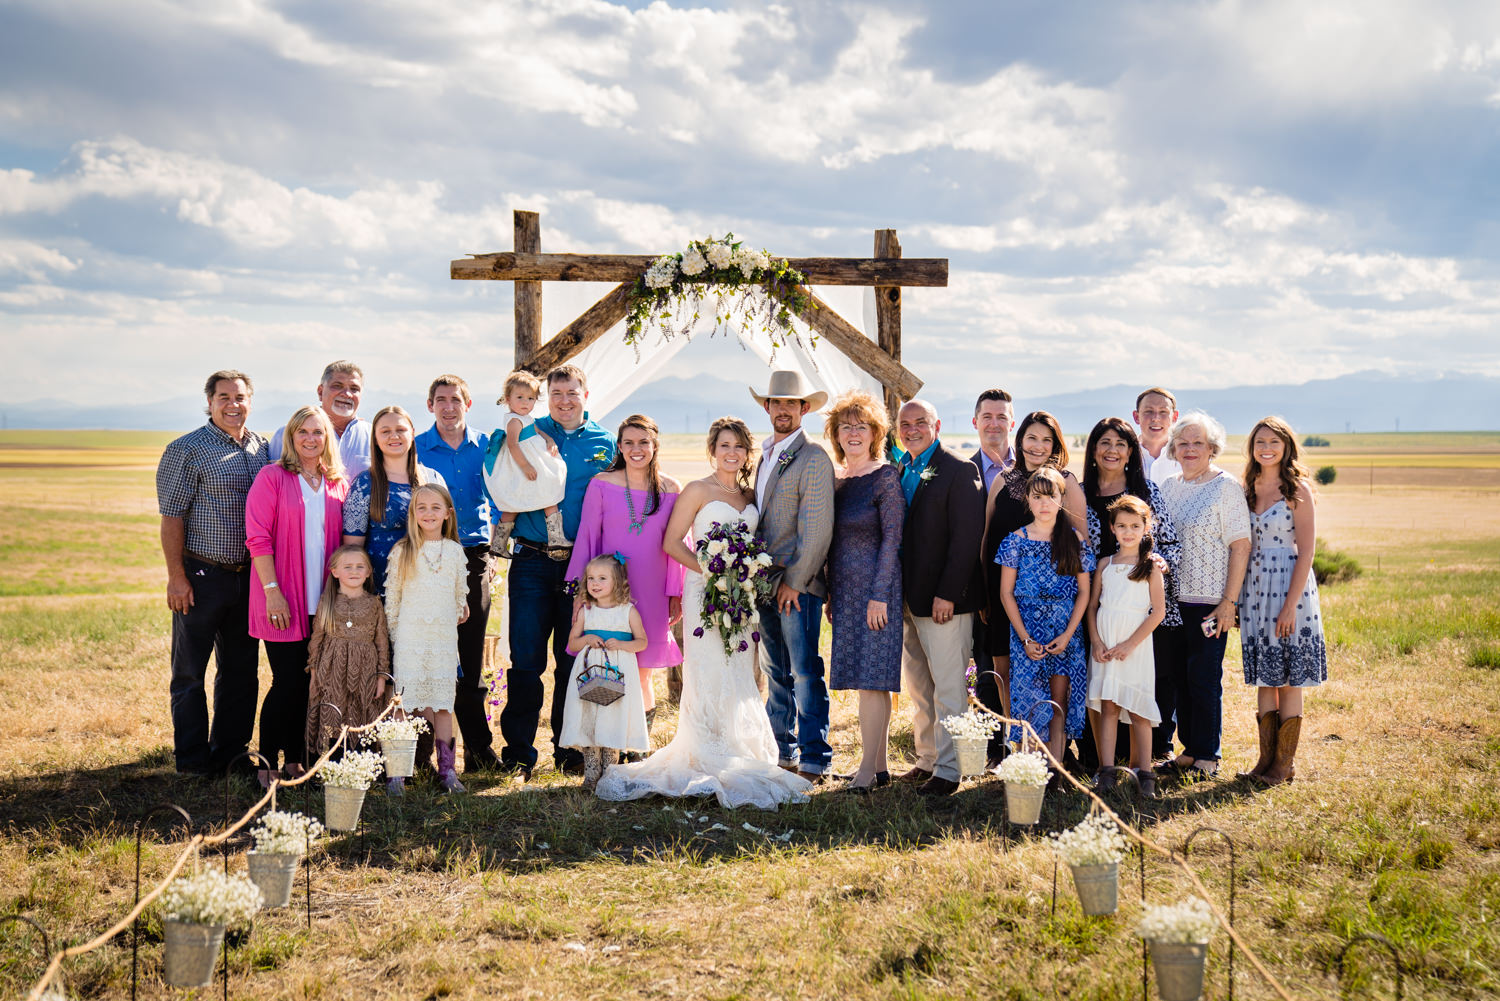 Nunn, Colorado wedding by Fort Collins, Colorado Wedding Photographer JMGant Photography.